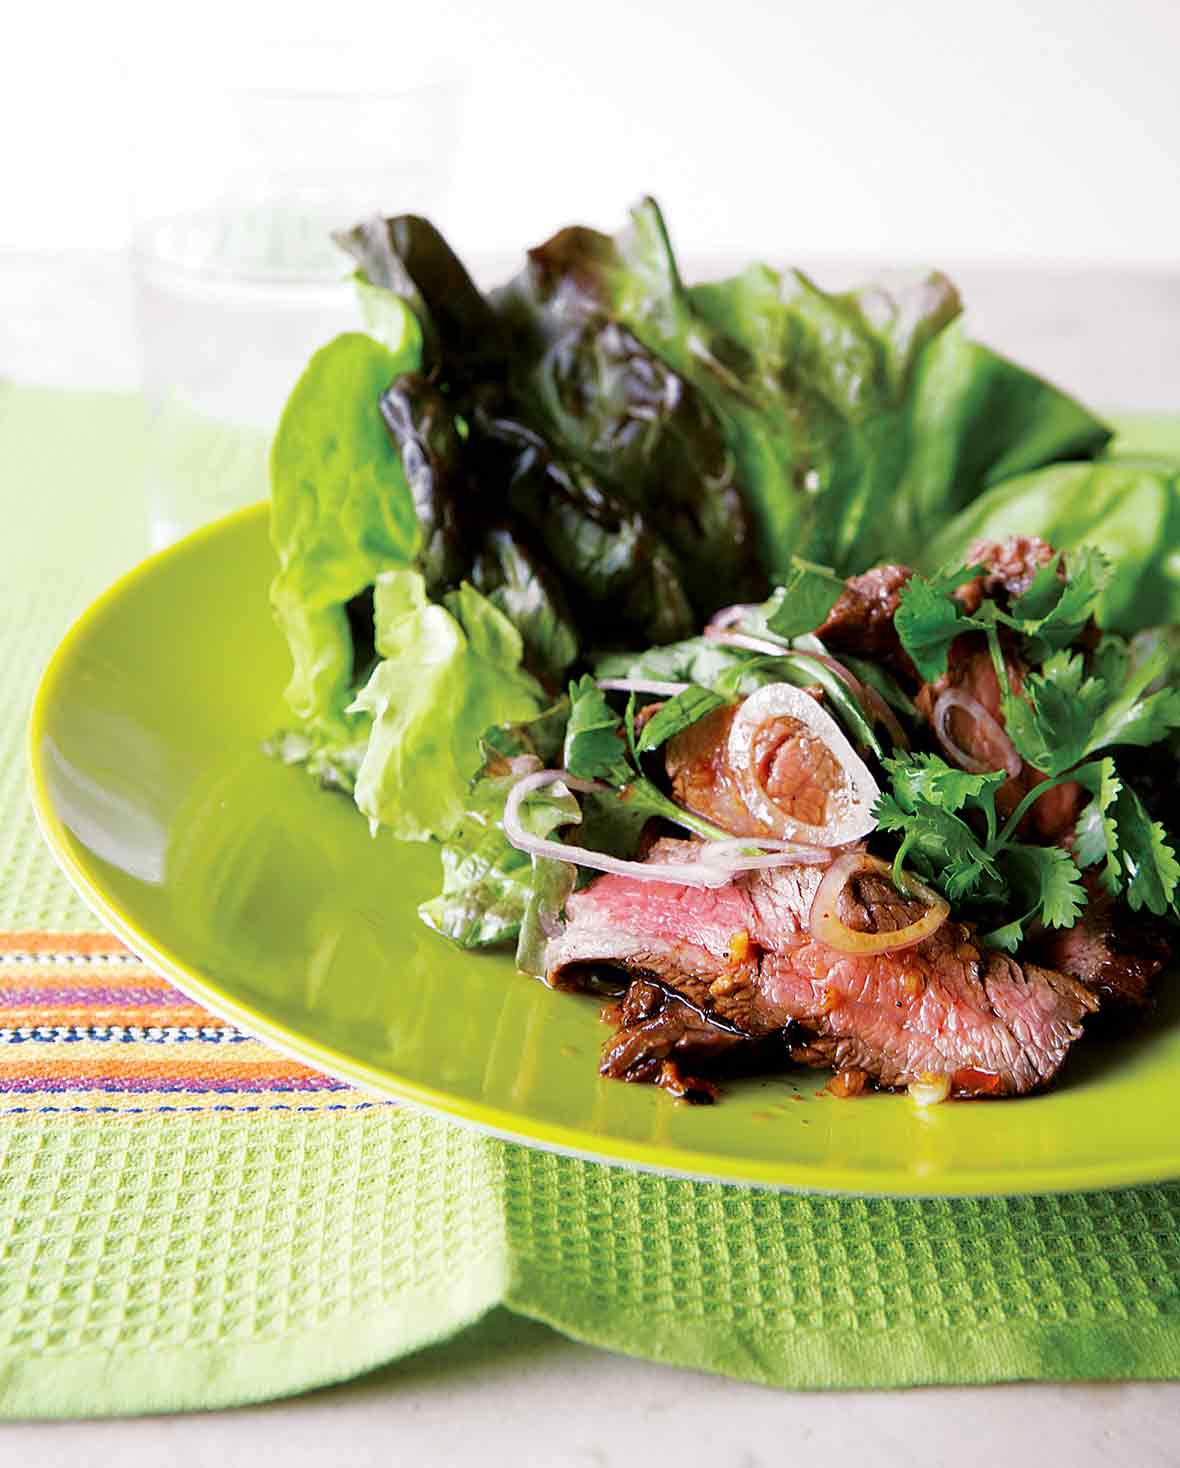 A green plate topped with a grilled Thai beef salad made with lettuce, beef, shallots, and cilantro.